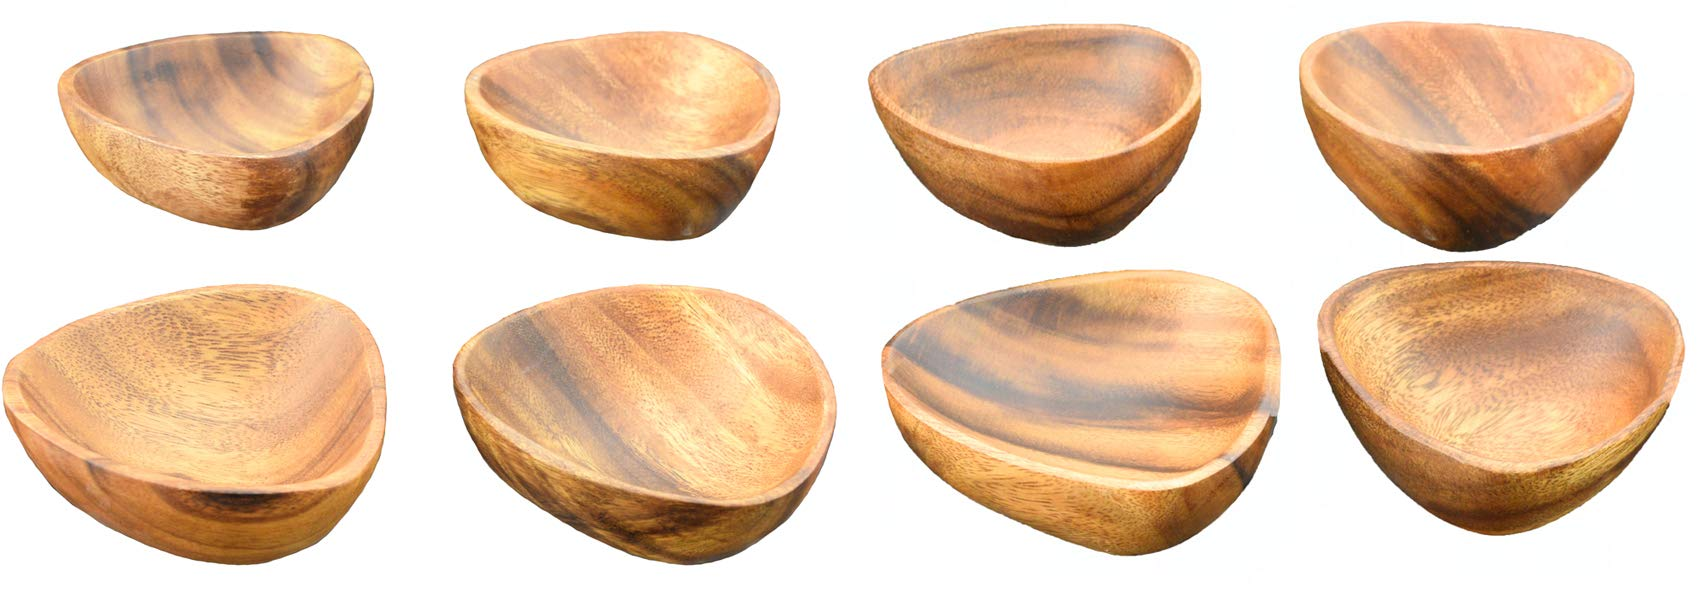 Acaciaware Acacia Wood 3-Sided Dip and Nut Bowls, 6-inch by 3-inch, Set of 8